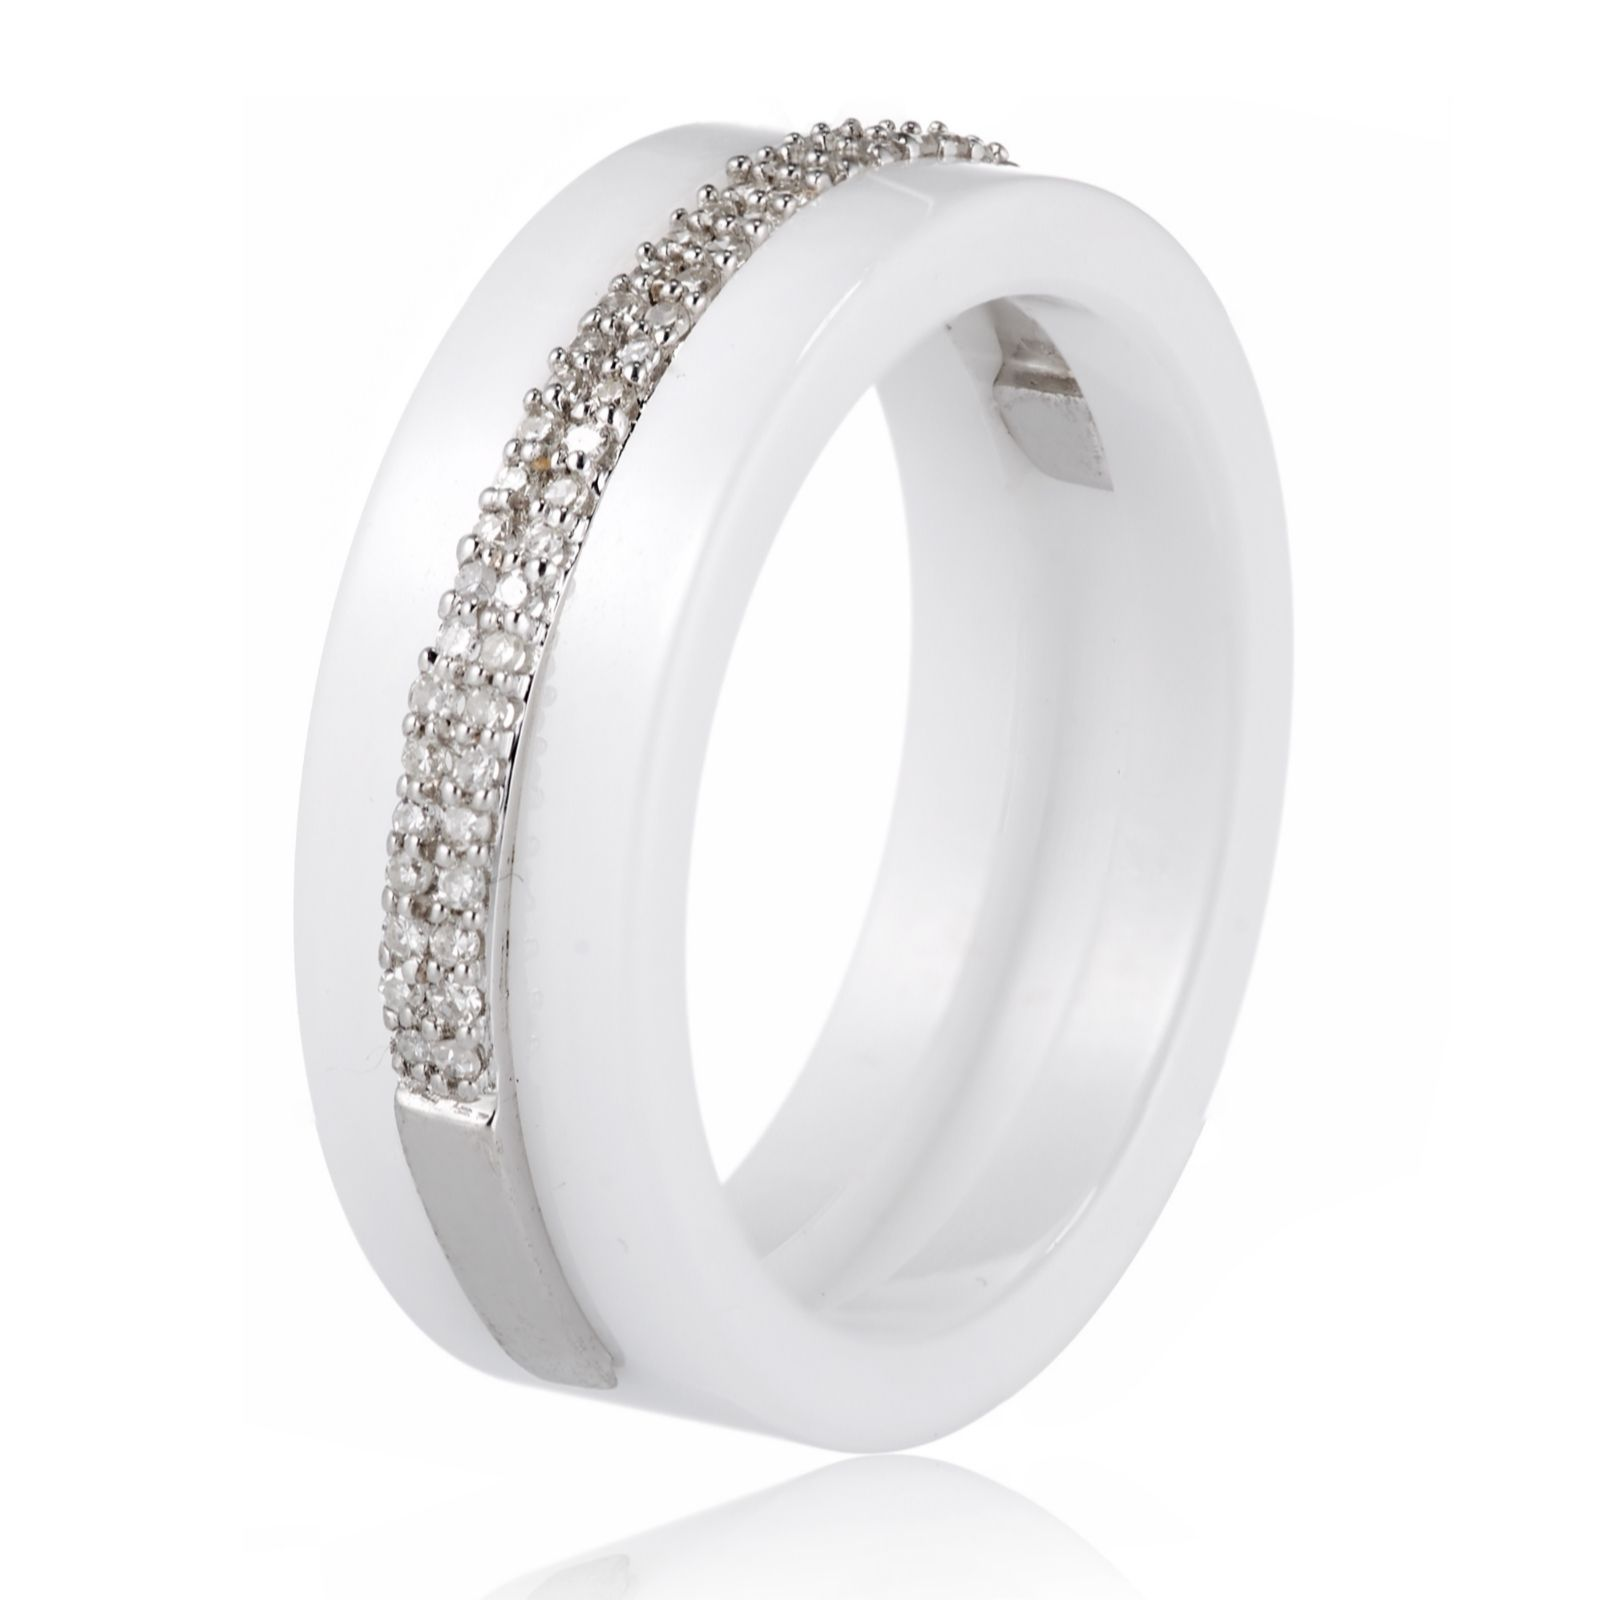 927a4afd34c15 0.15ct Diamond & Ceramic Ring Sterling Silver - QVC UK